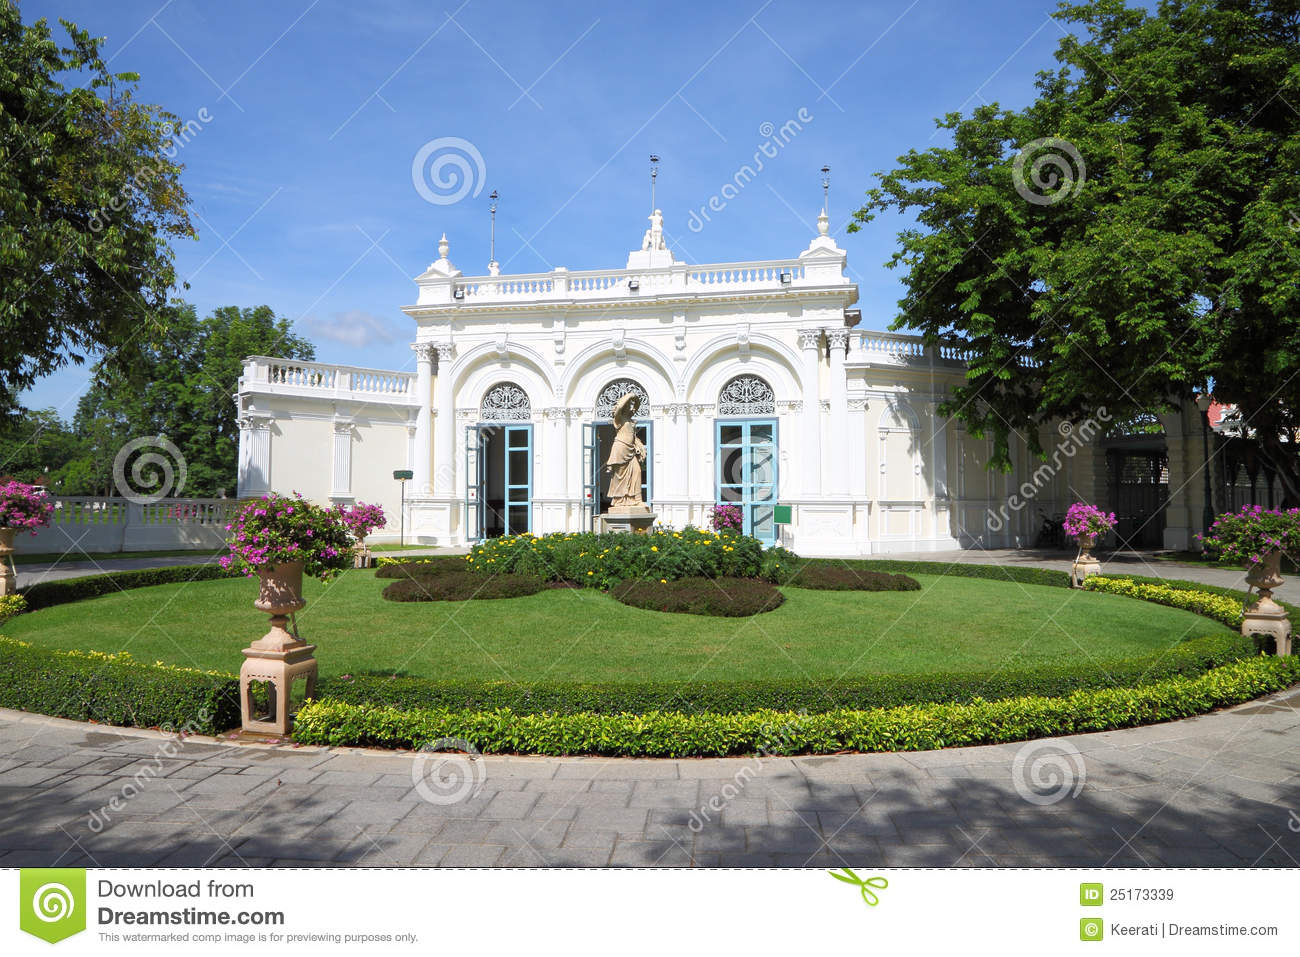 Classic building royalty free stock images image 25173339 for Round garden buildings